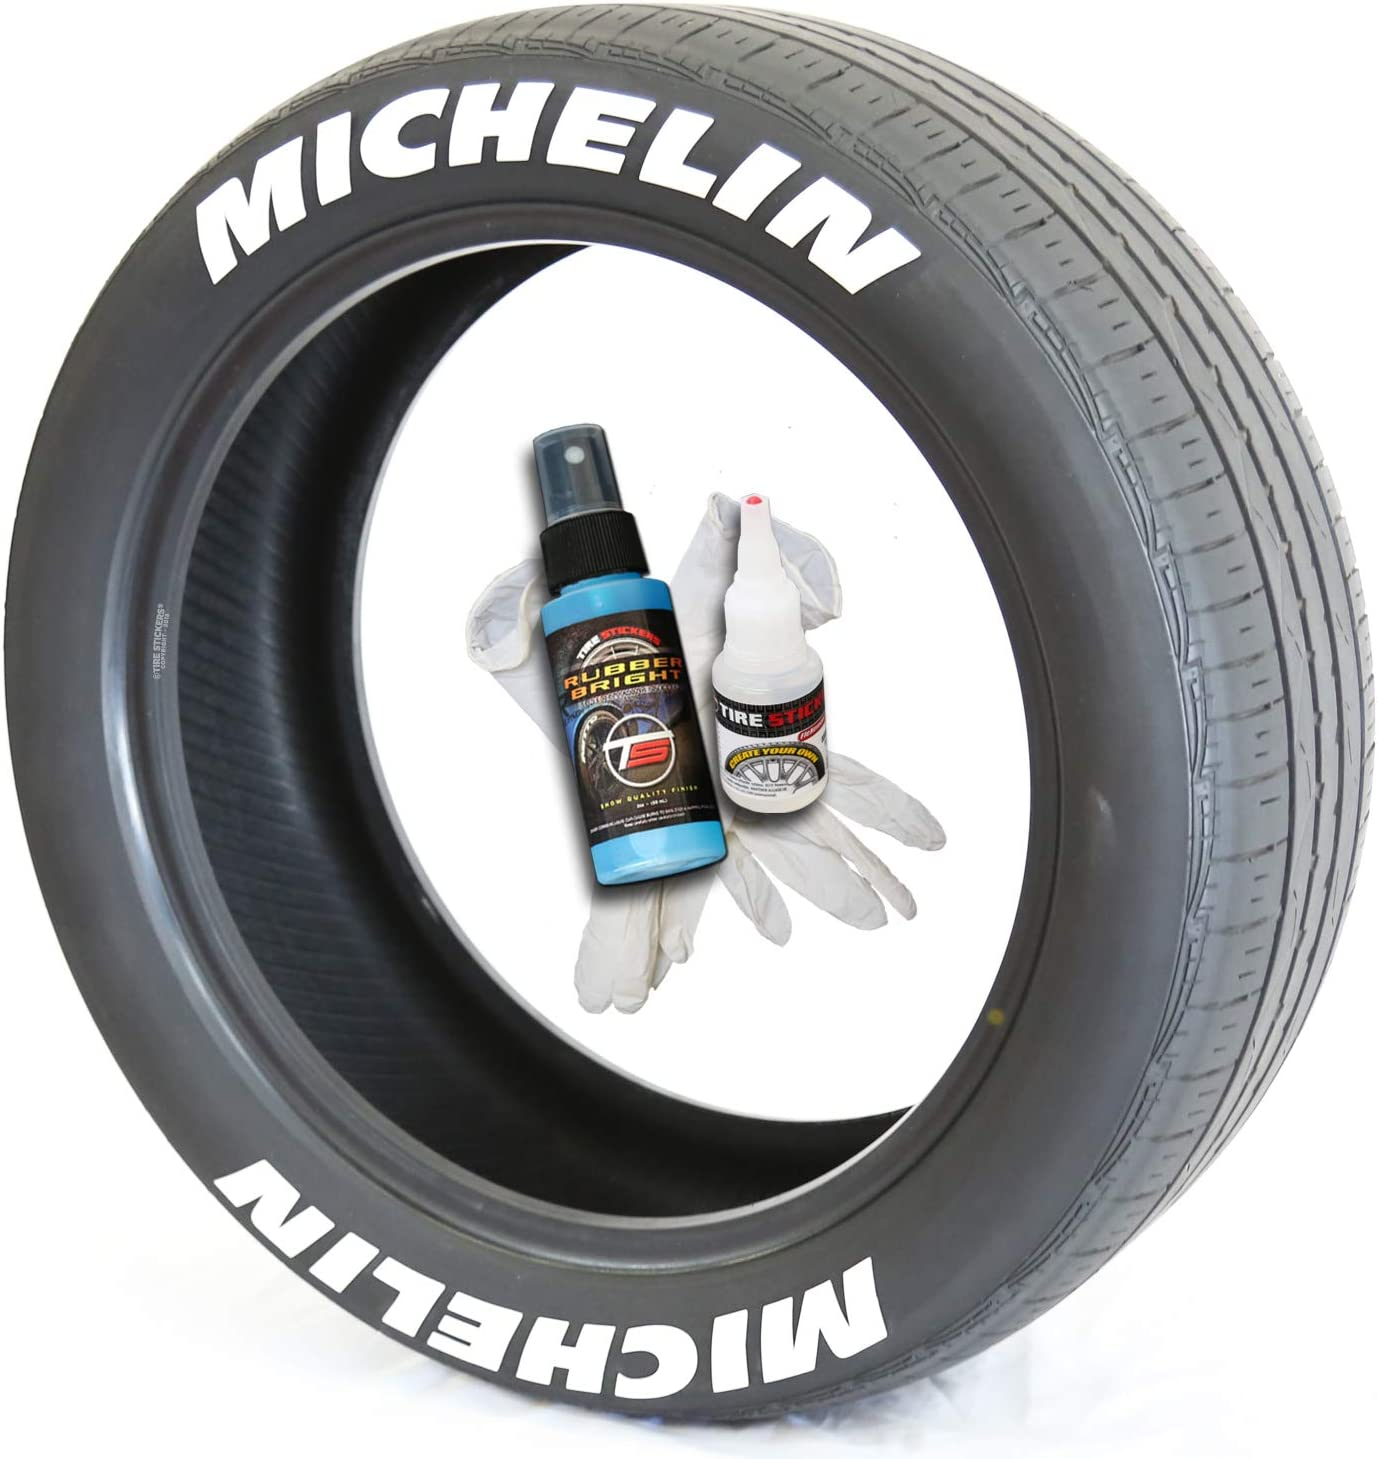 """TIRE LETTERS 1.25/"""" SUPERSPORT 15/""""16/""""17/""""18/"""" 19/"""" 20/"""" 21/"""" 22/"""" Freeship"""